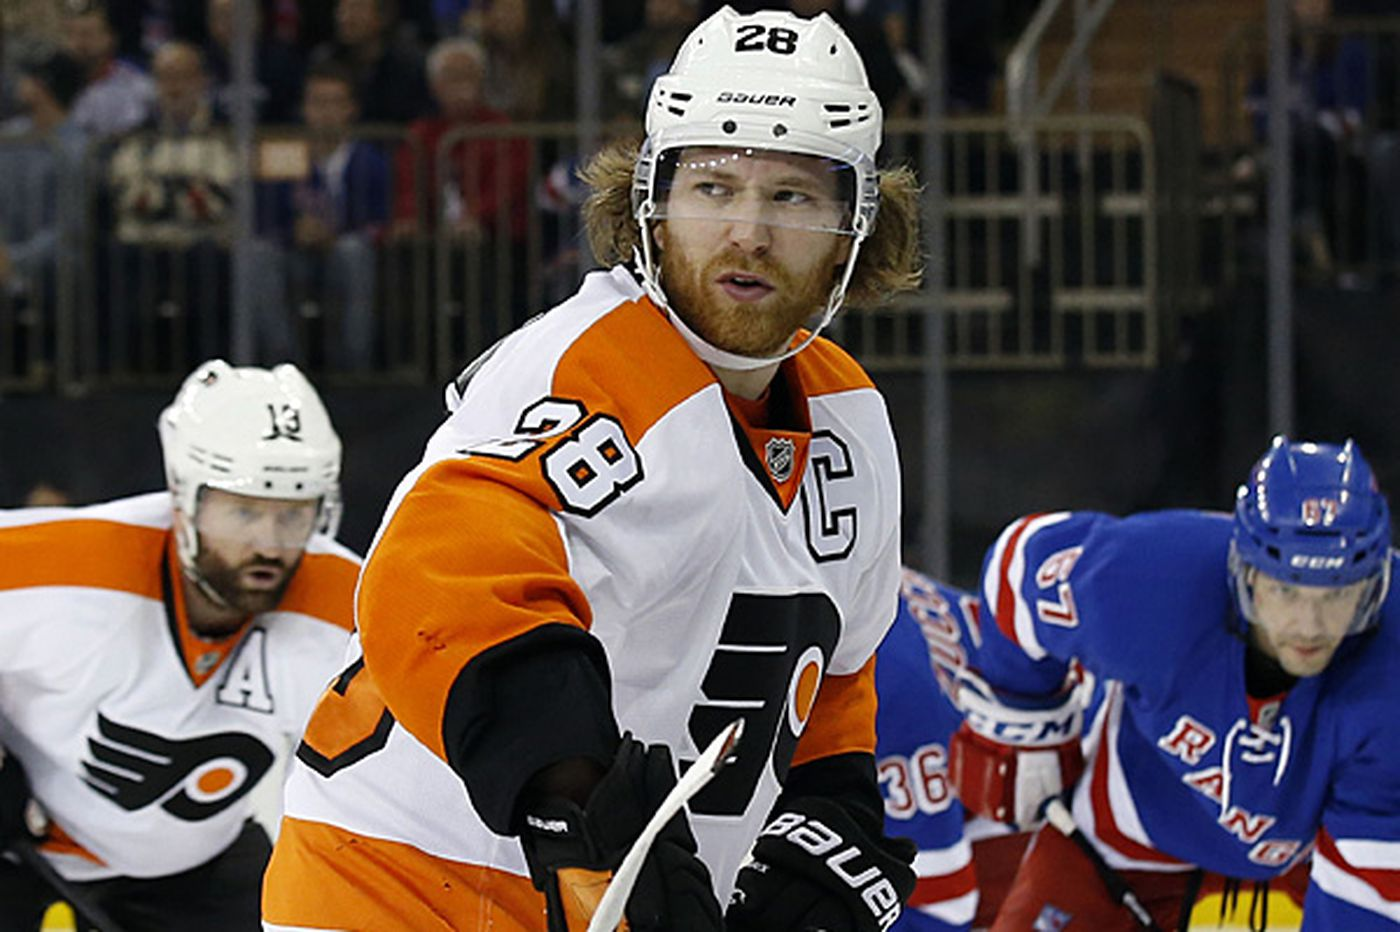 Flyers Notes: Giroux a finalist for MVP award